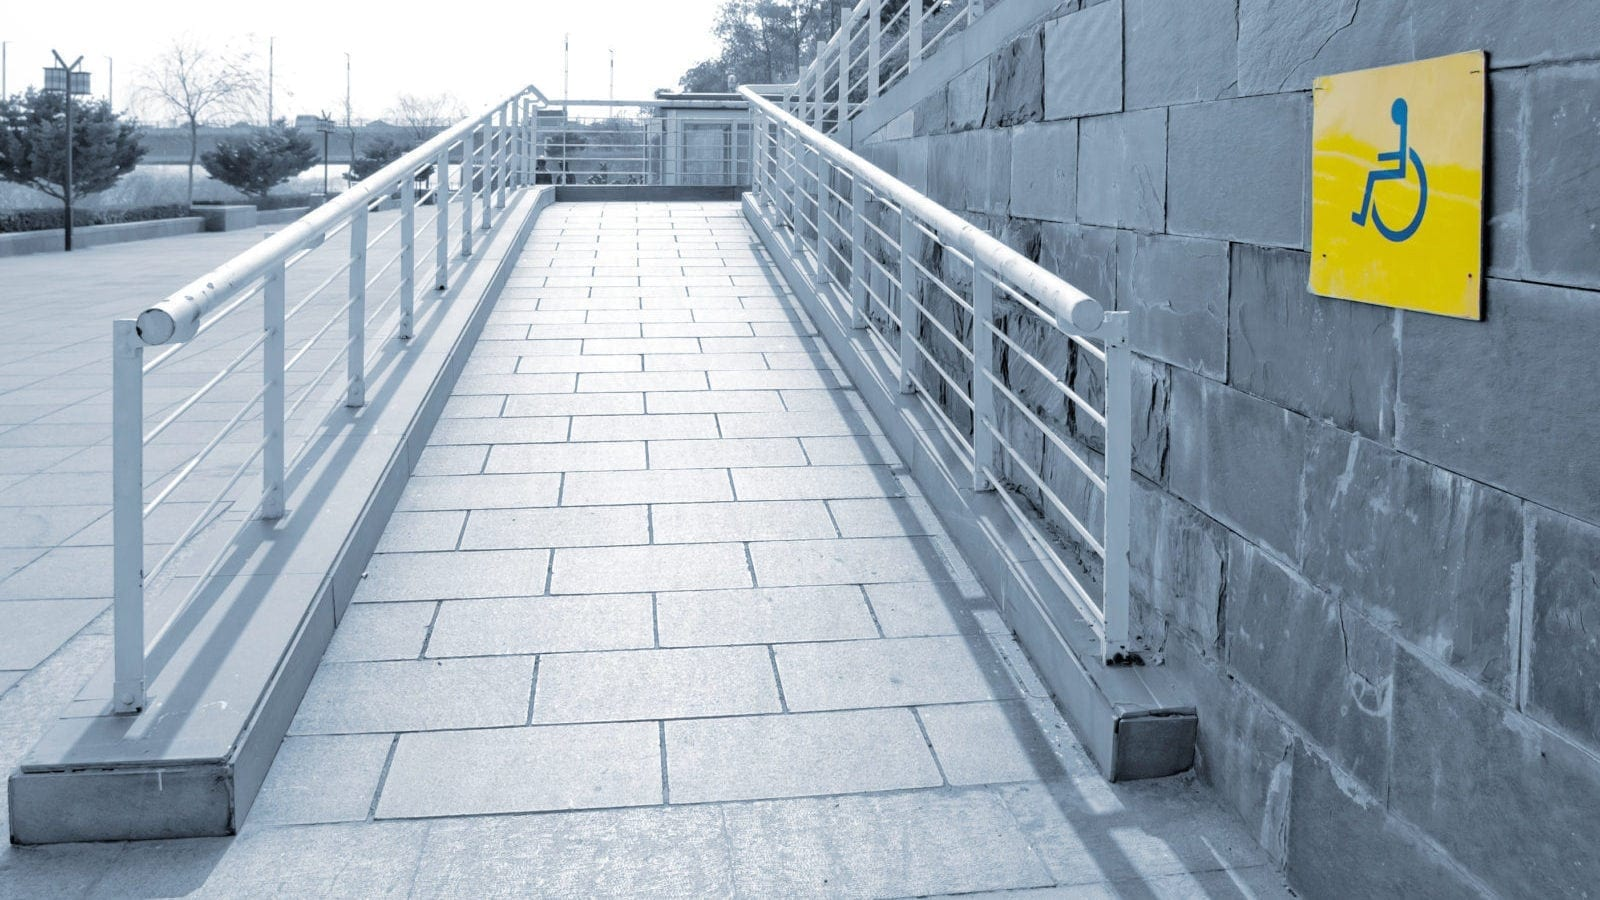 Handicapped Accessible Ramp Stock Photo